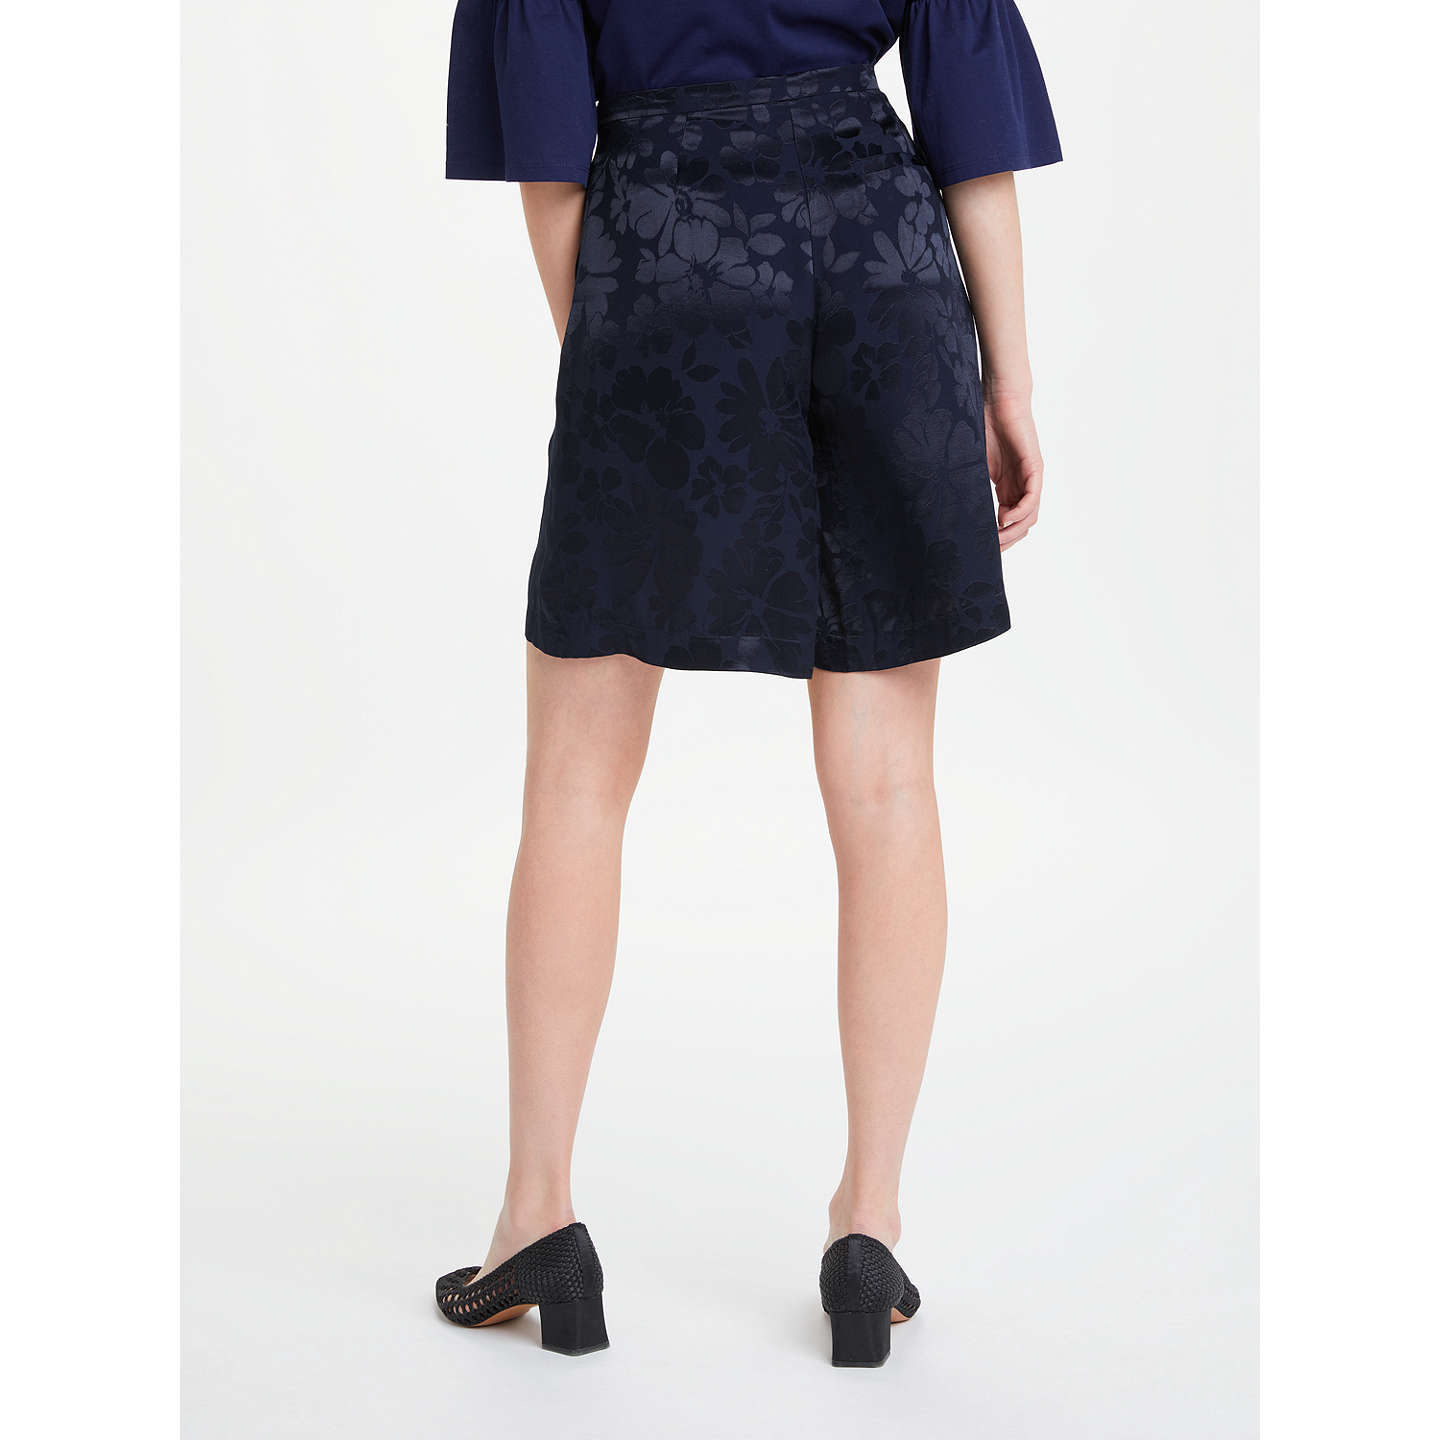 Stean Midnight Floral Jacquard City Shorts Finery V5yhpxz